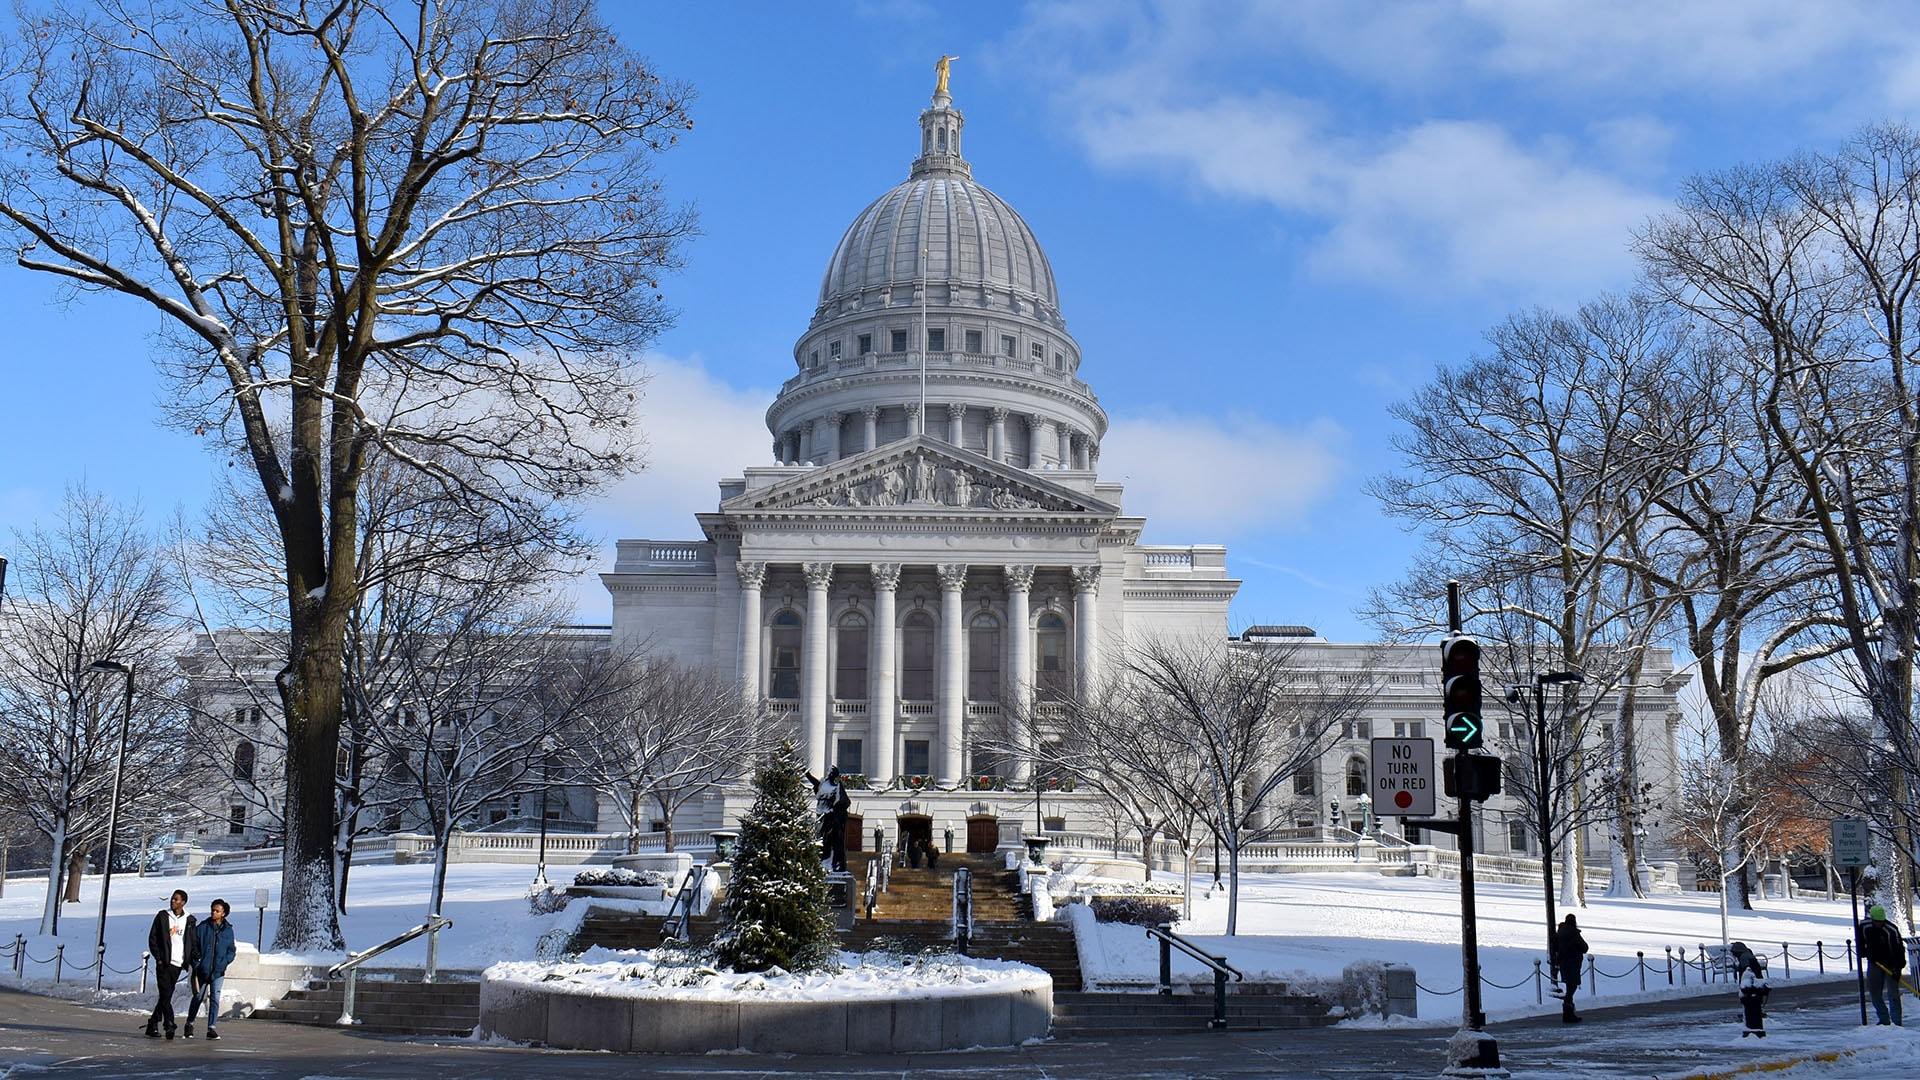 The Wisconsin State Capitol is beautiful in all seasons, though the warm interior is especially inviting in winter.